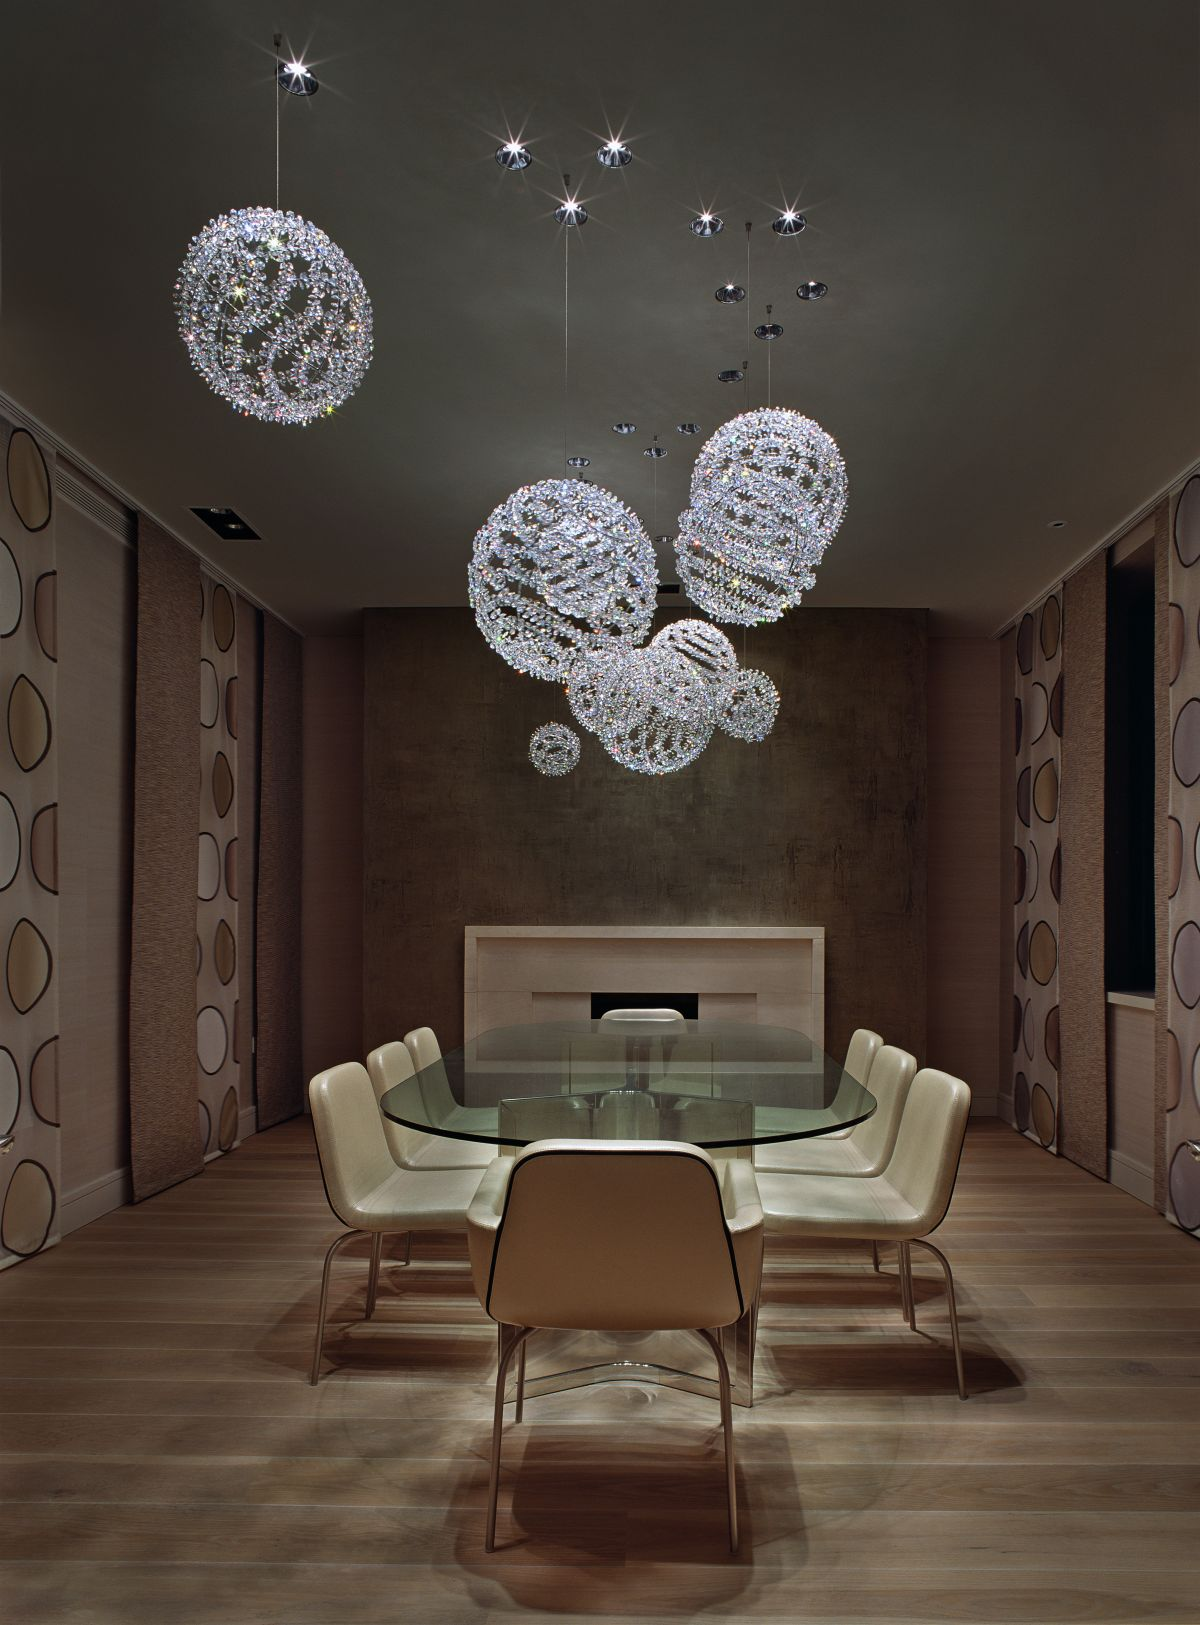 decorating chair for baby shower leather club recliner 30 amazing crystal chandeliers ideas your home